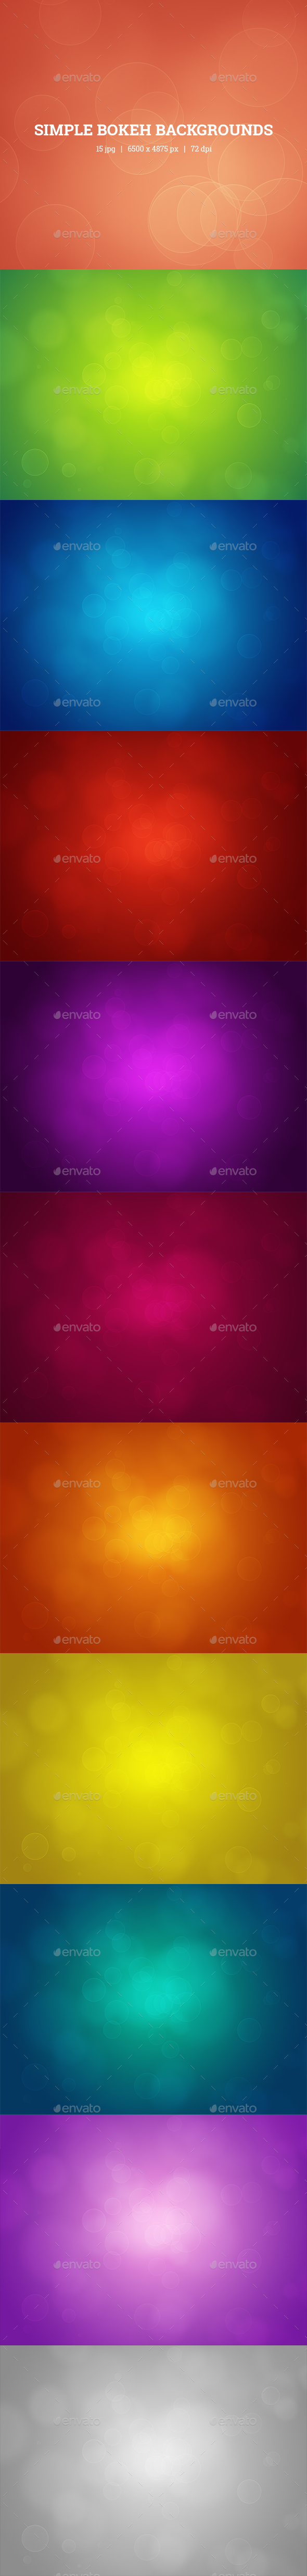 Simple Bokeh Backgrounds - Abstract Backgrounds